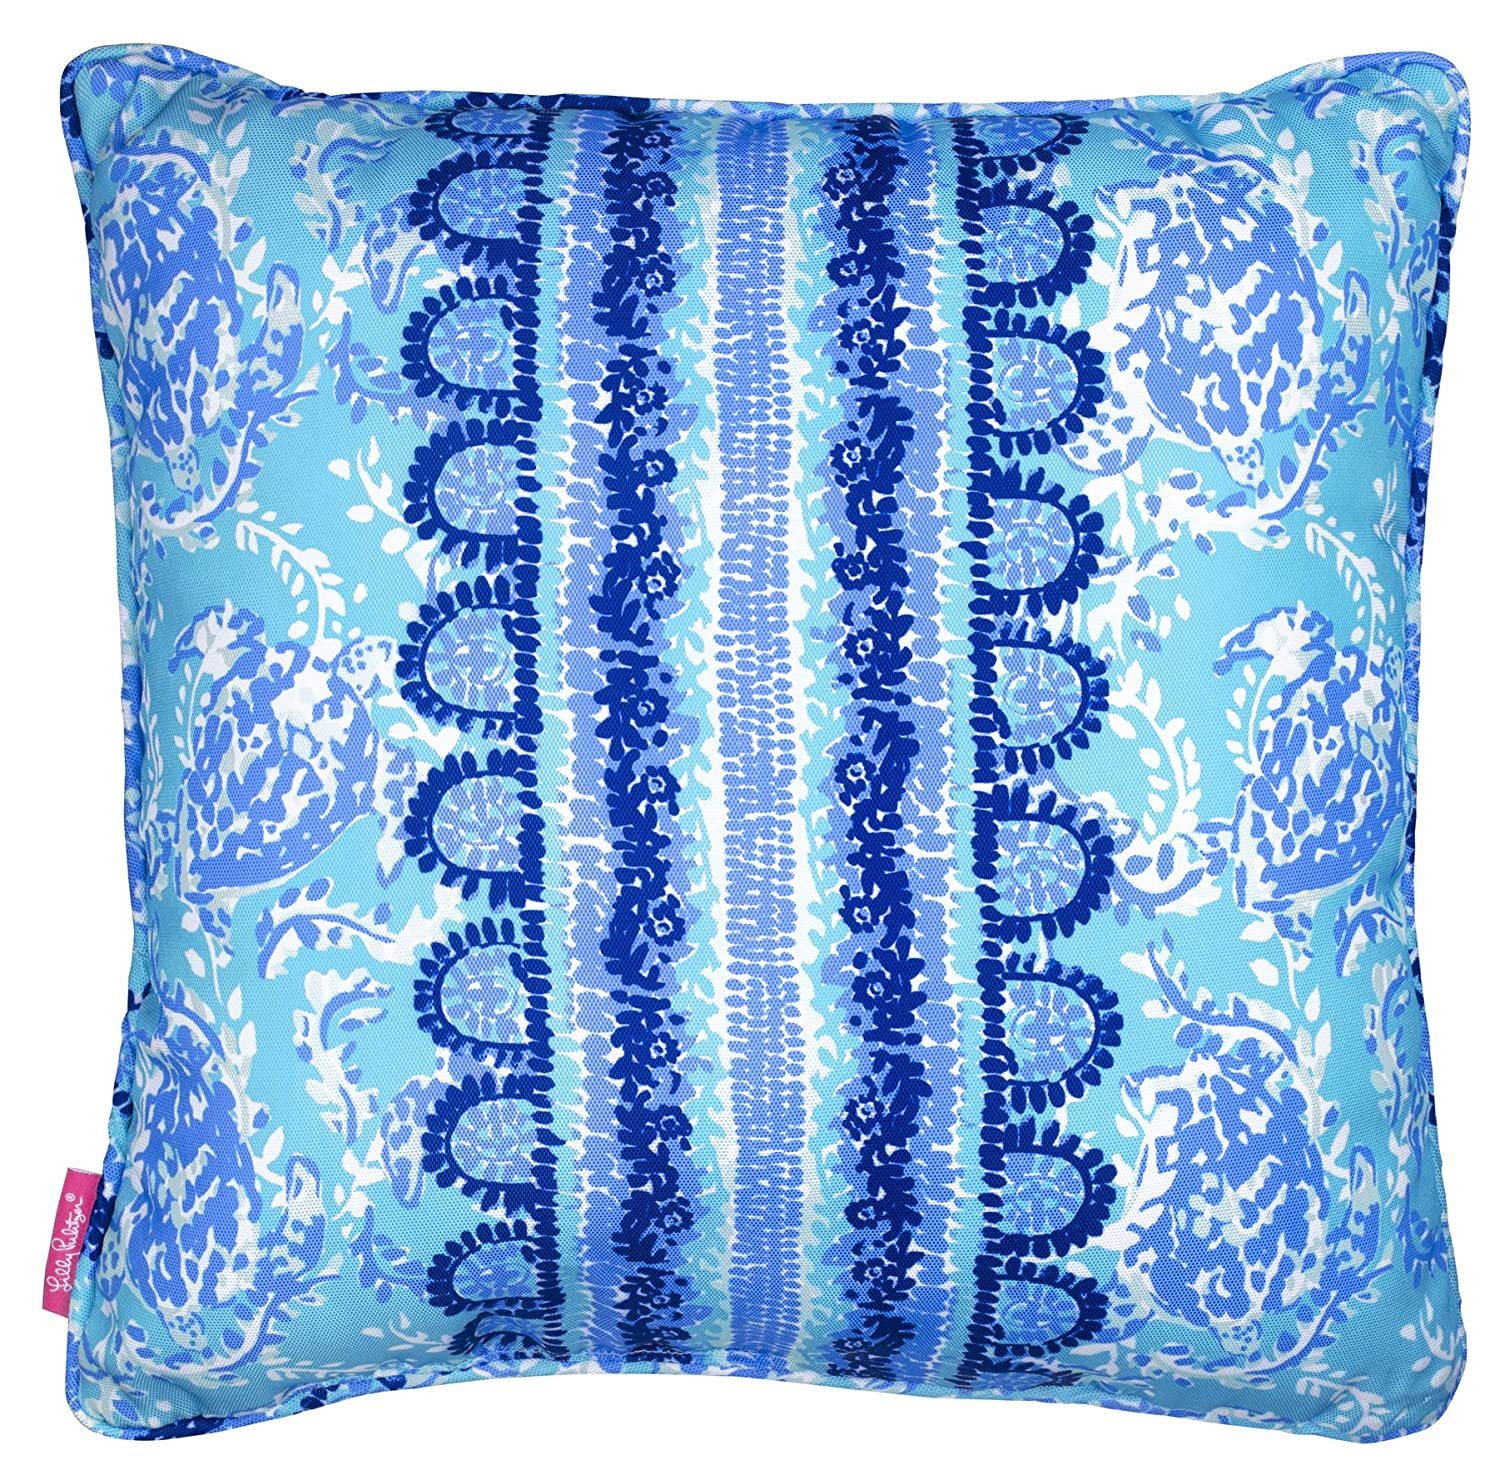 c8ce7df3e214f9 Amazon.com : Lilly Pulitzer Indoor/Outdoor Large Decorative Pillow, Turtley  Awesome : Garden & Outdoor